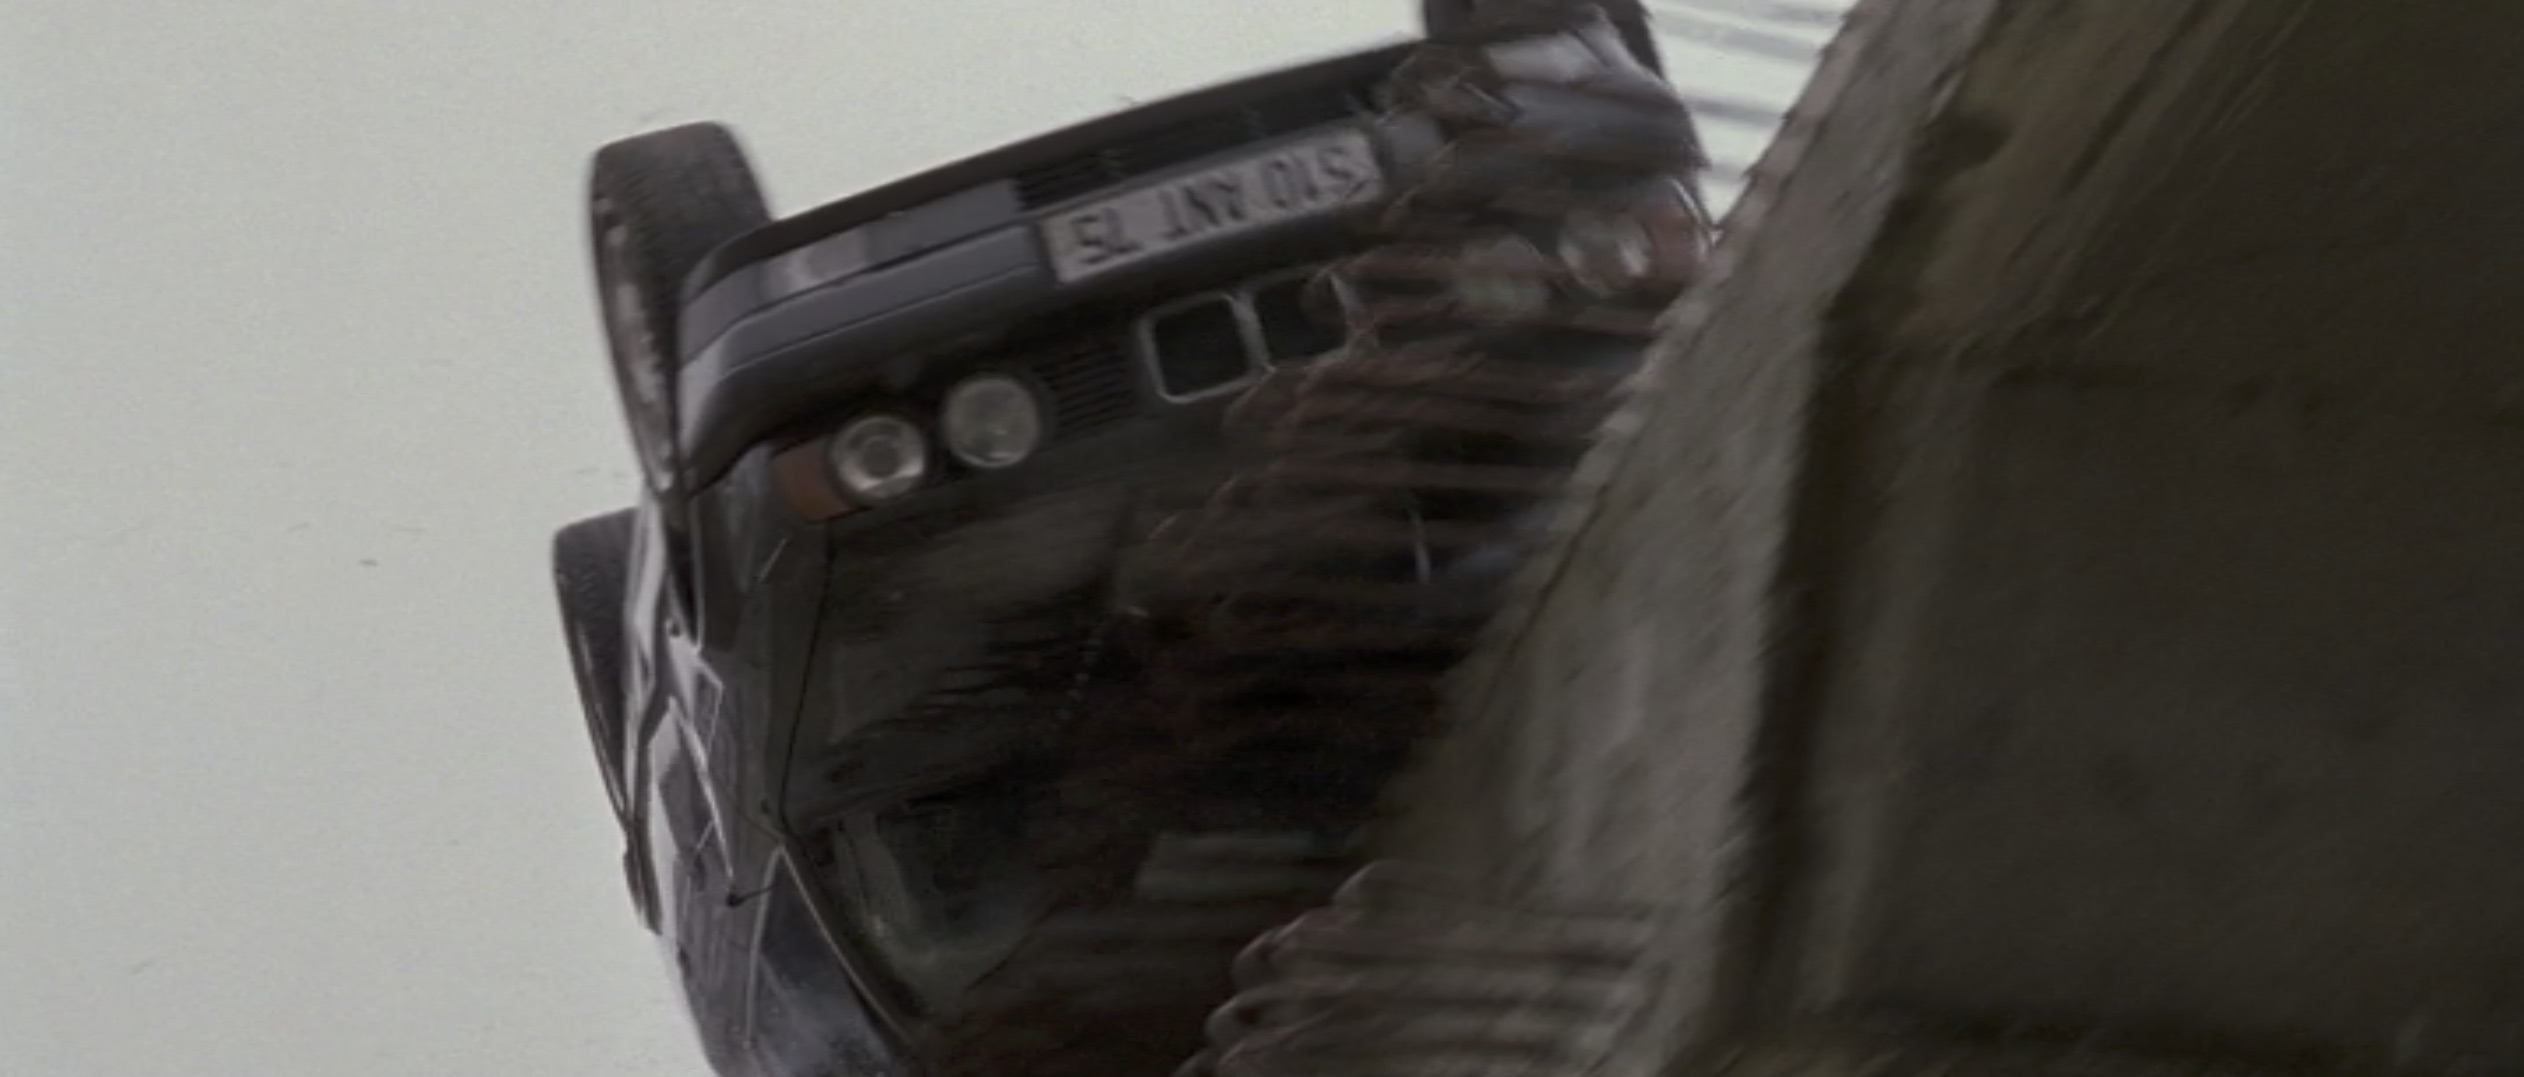 Ronin car hanging off the edge